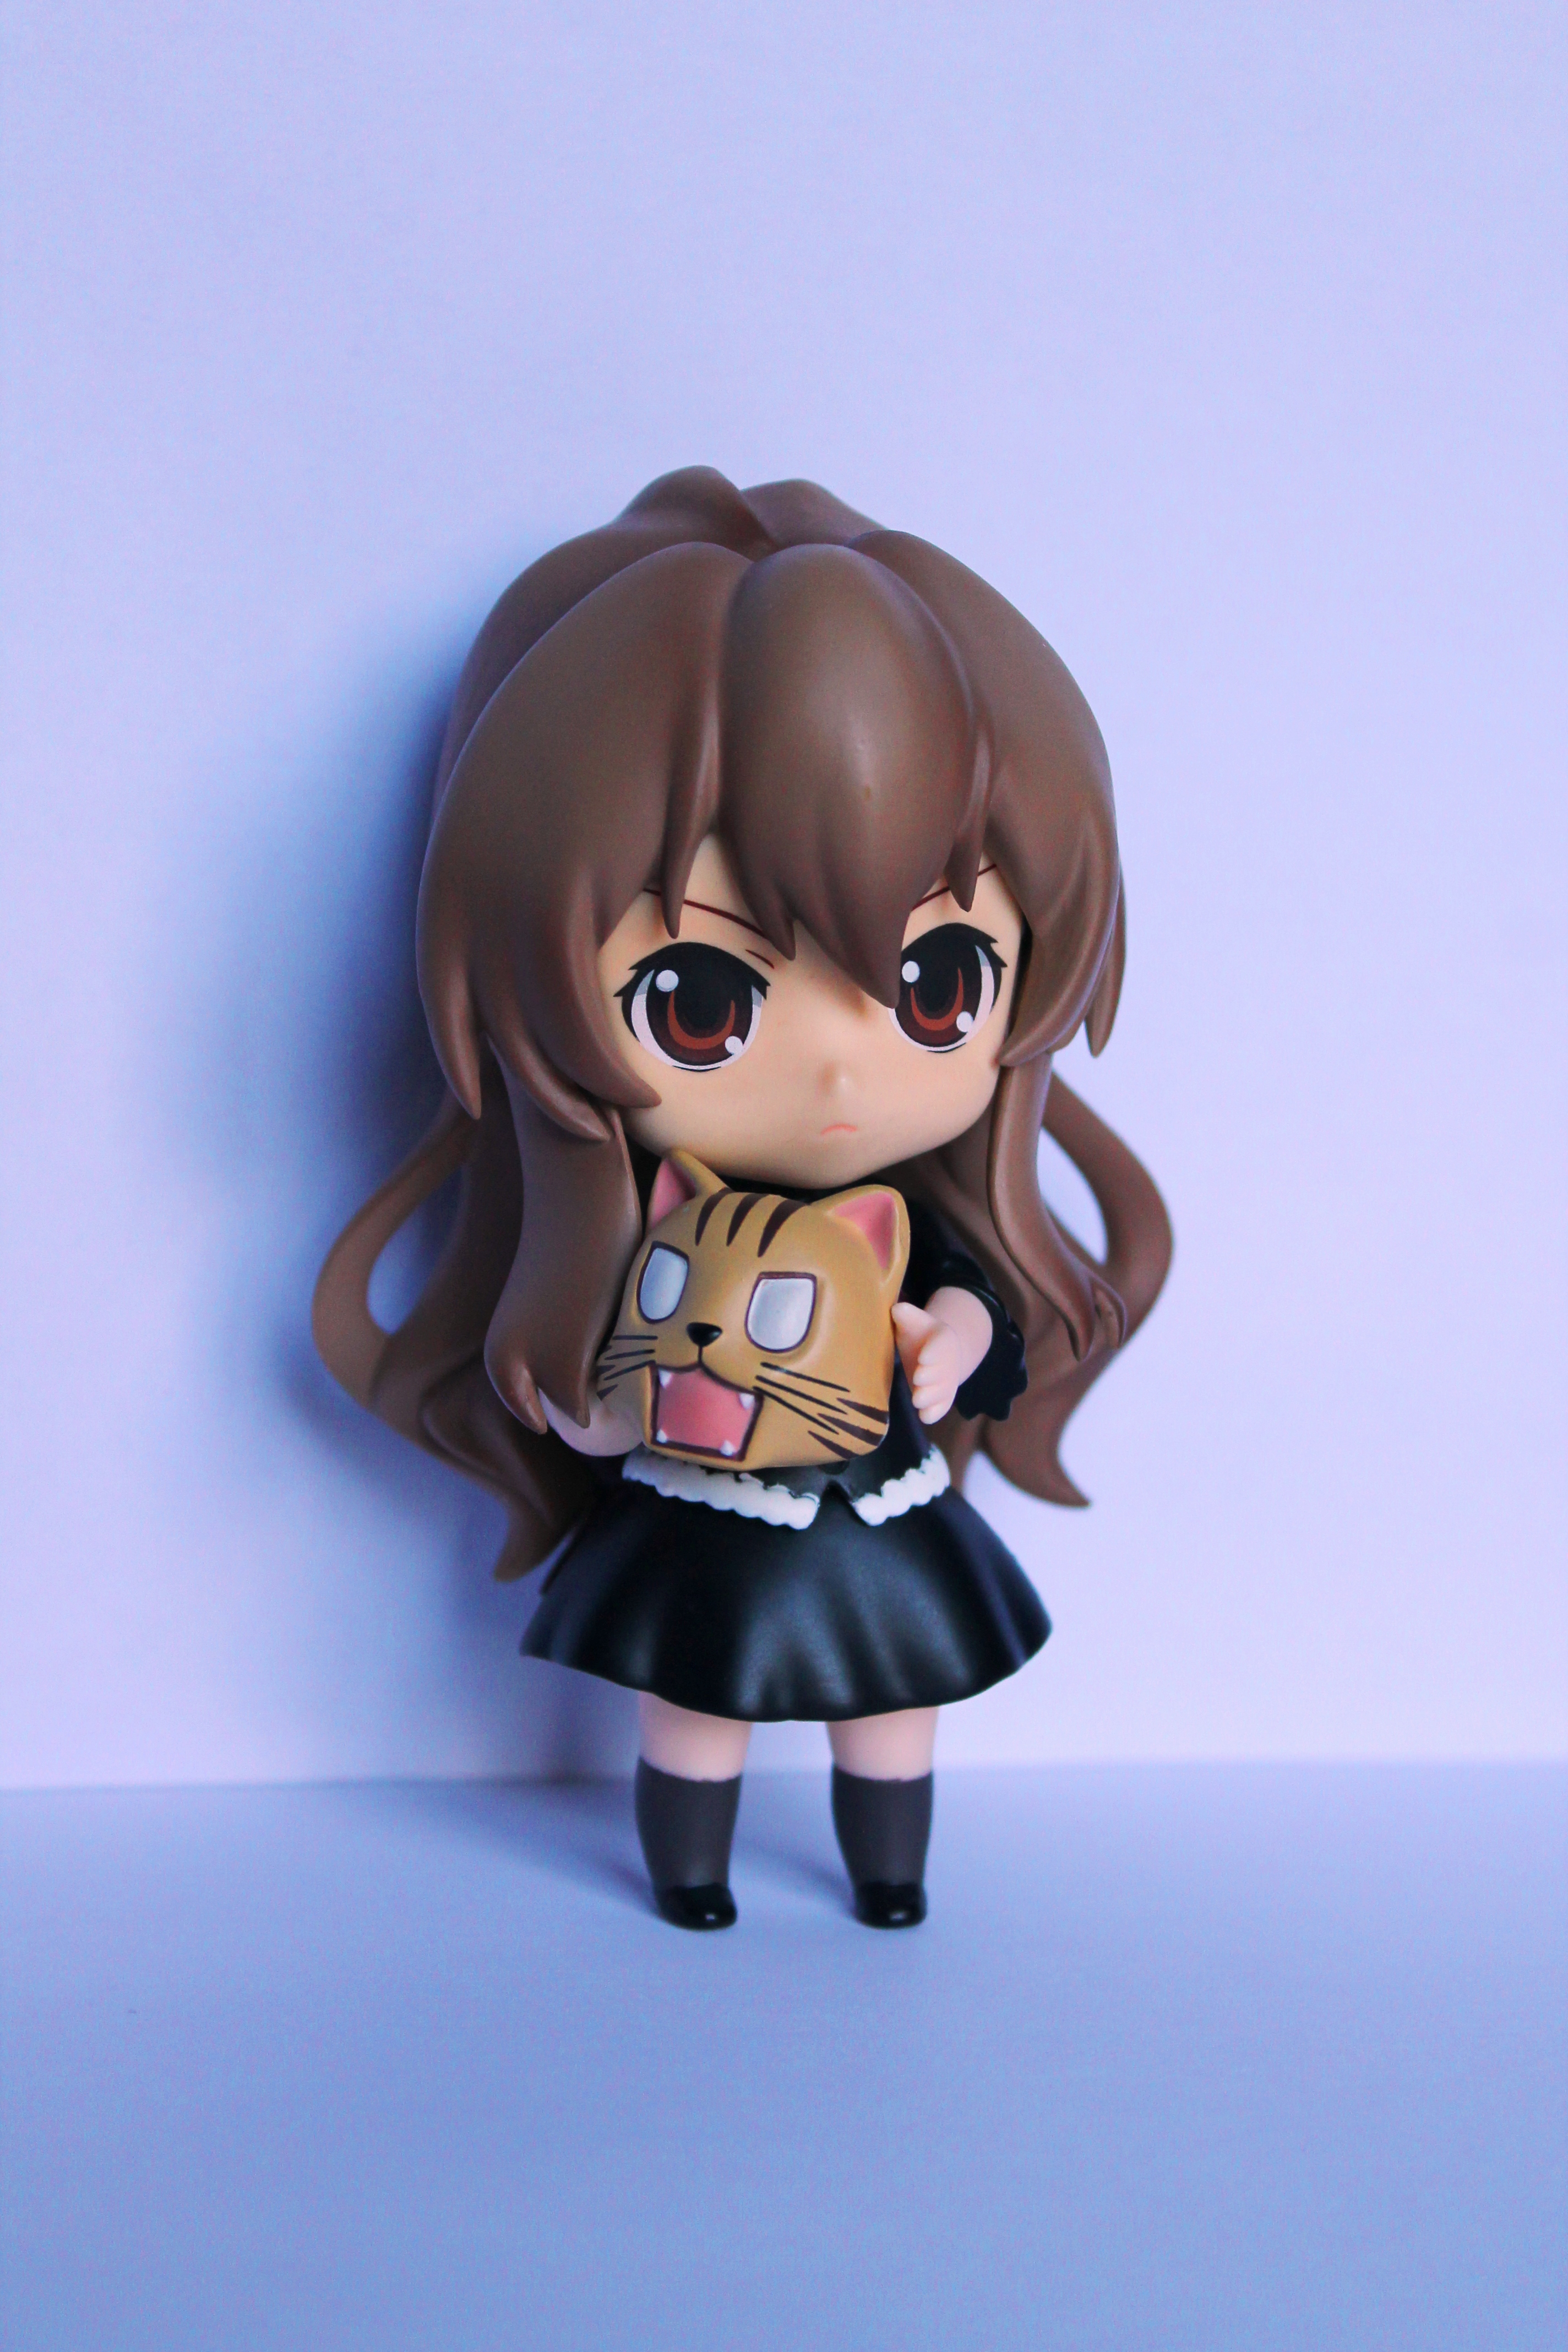 Alien Wallpaper Cute Nendoroid Images Taiga Hd Wallpaper And Background Photos